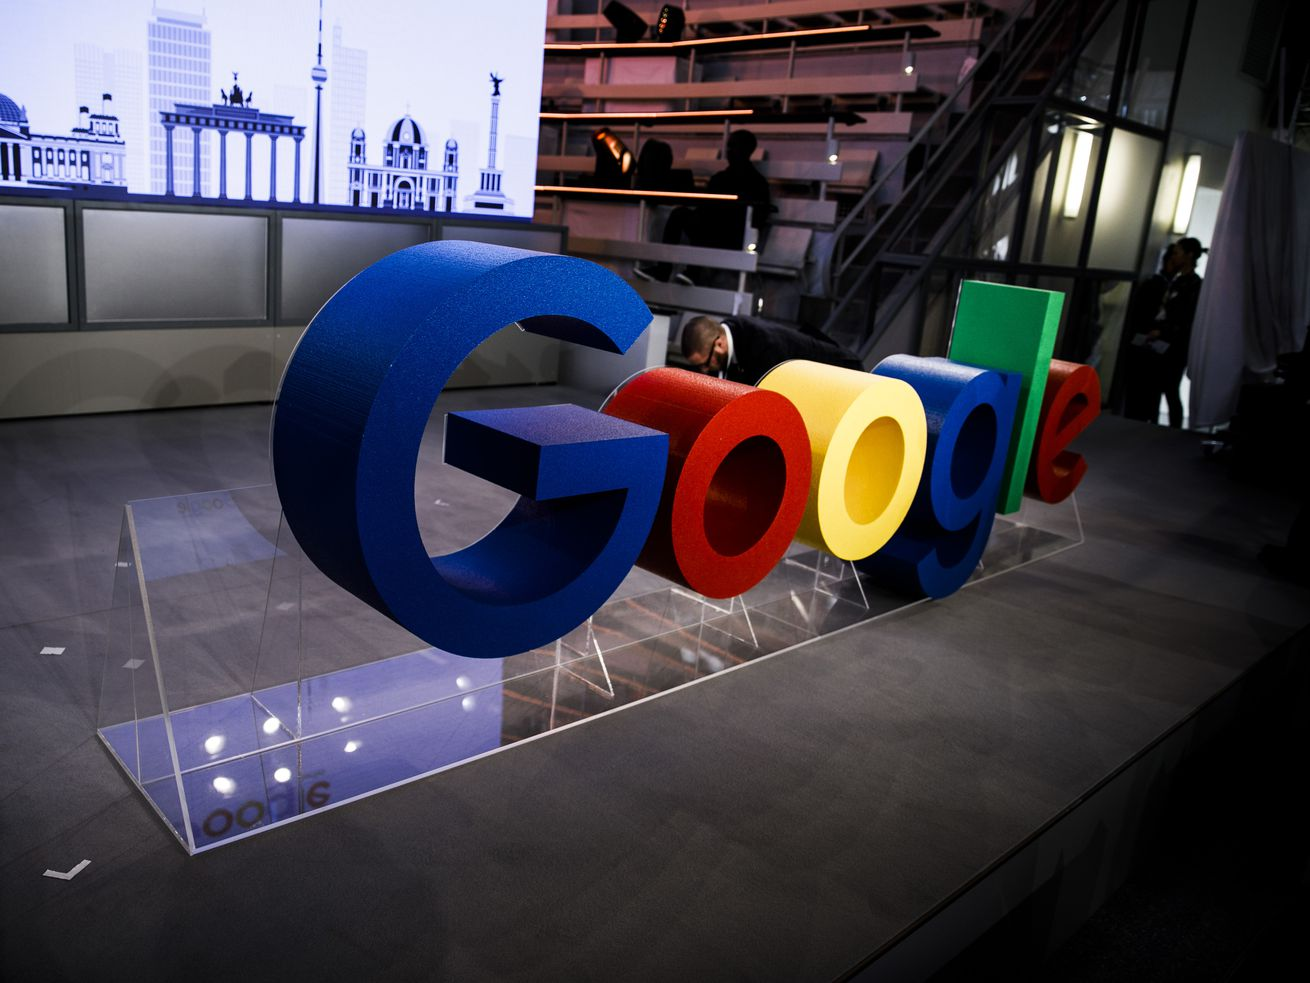 The Google logo featured in the opening of a company office in Berlin, Germany, on January 22, 2019.